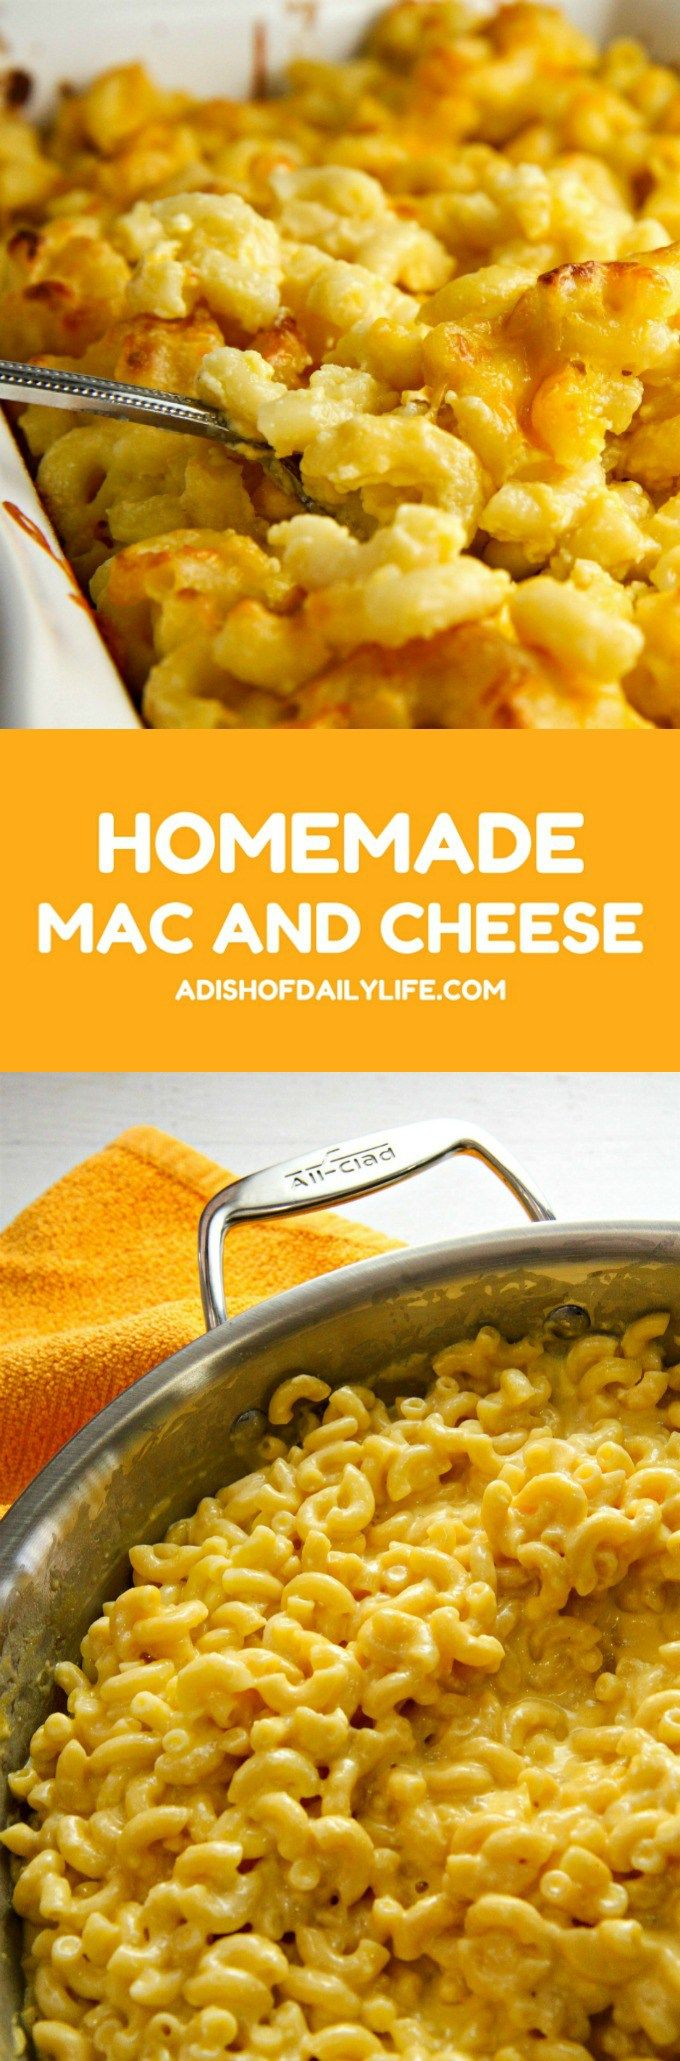 Always a crowd favorite, this Homemade Mac and Cheese recipe is a comfort food classic! Quick and easy to make, with only 5 ingredients, it's perfect for potlucks or a weeknight dinner.